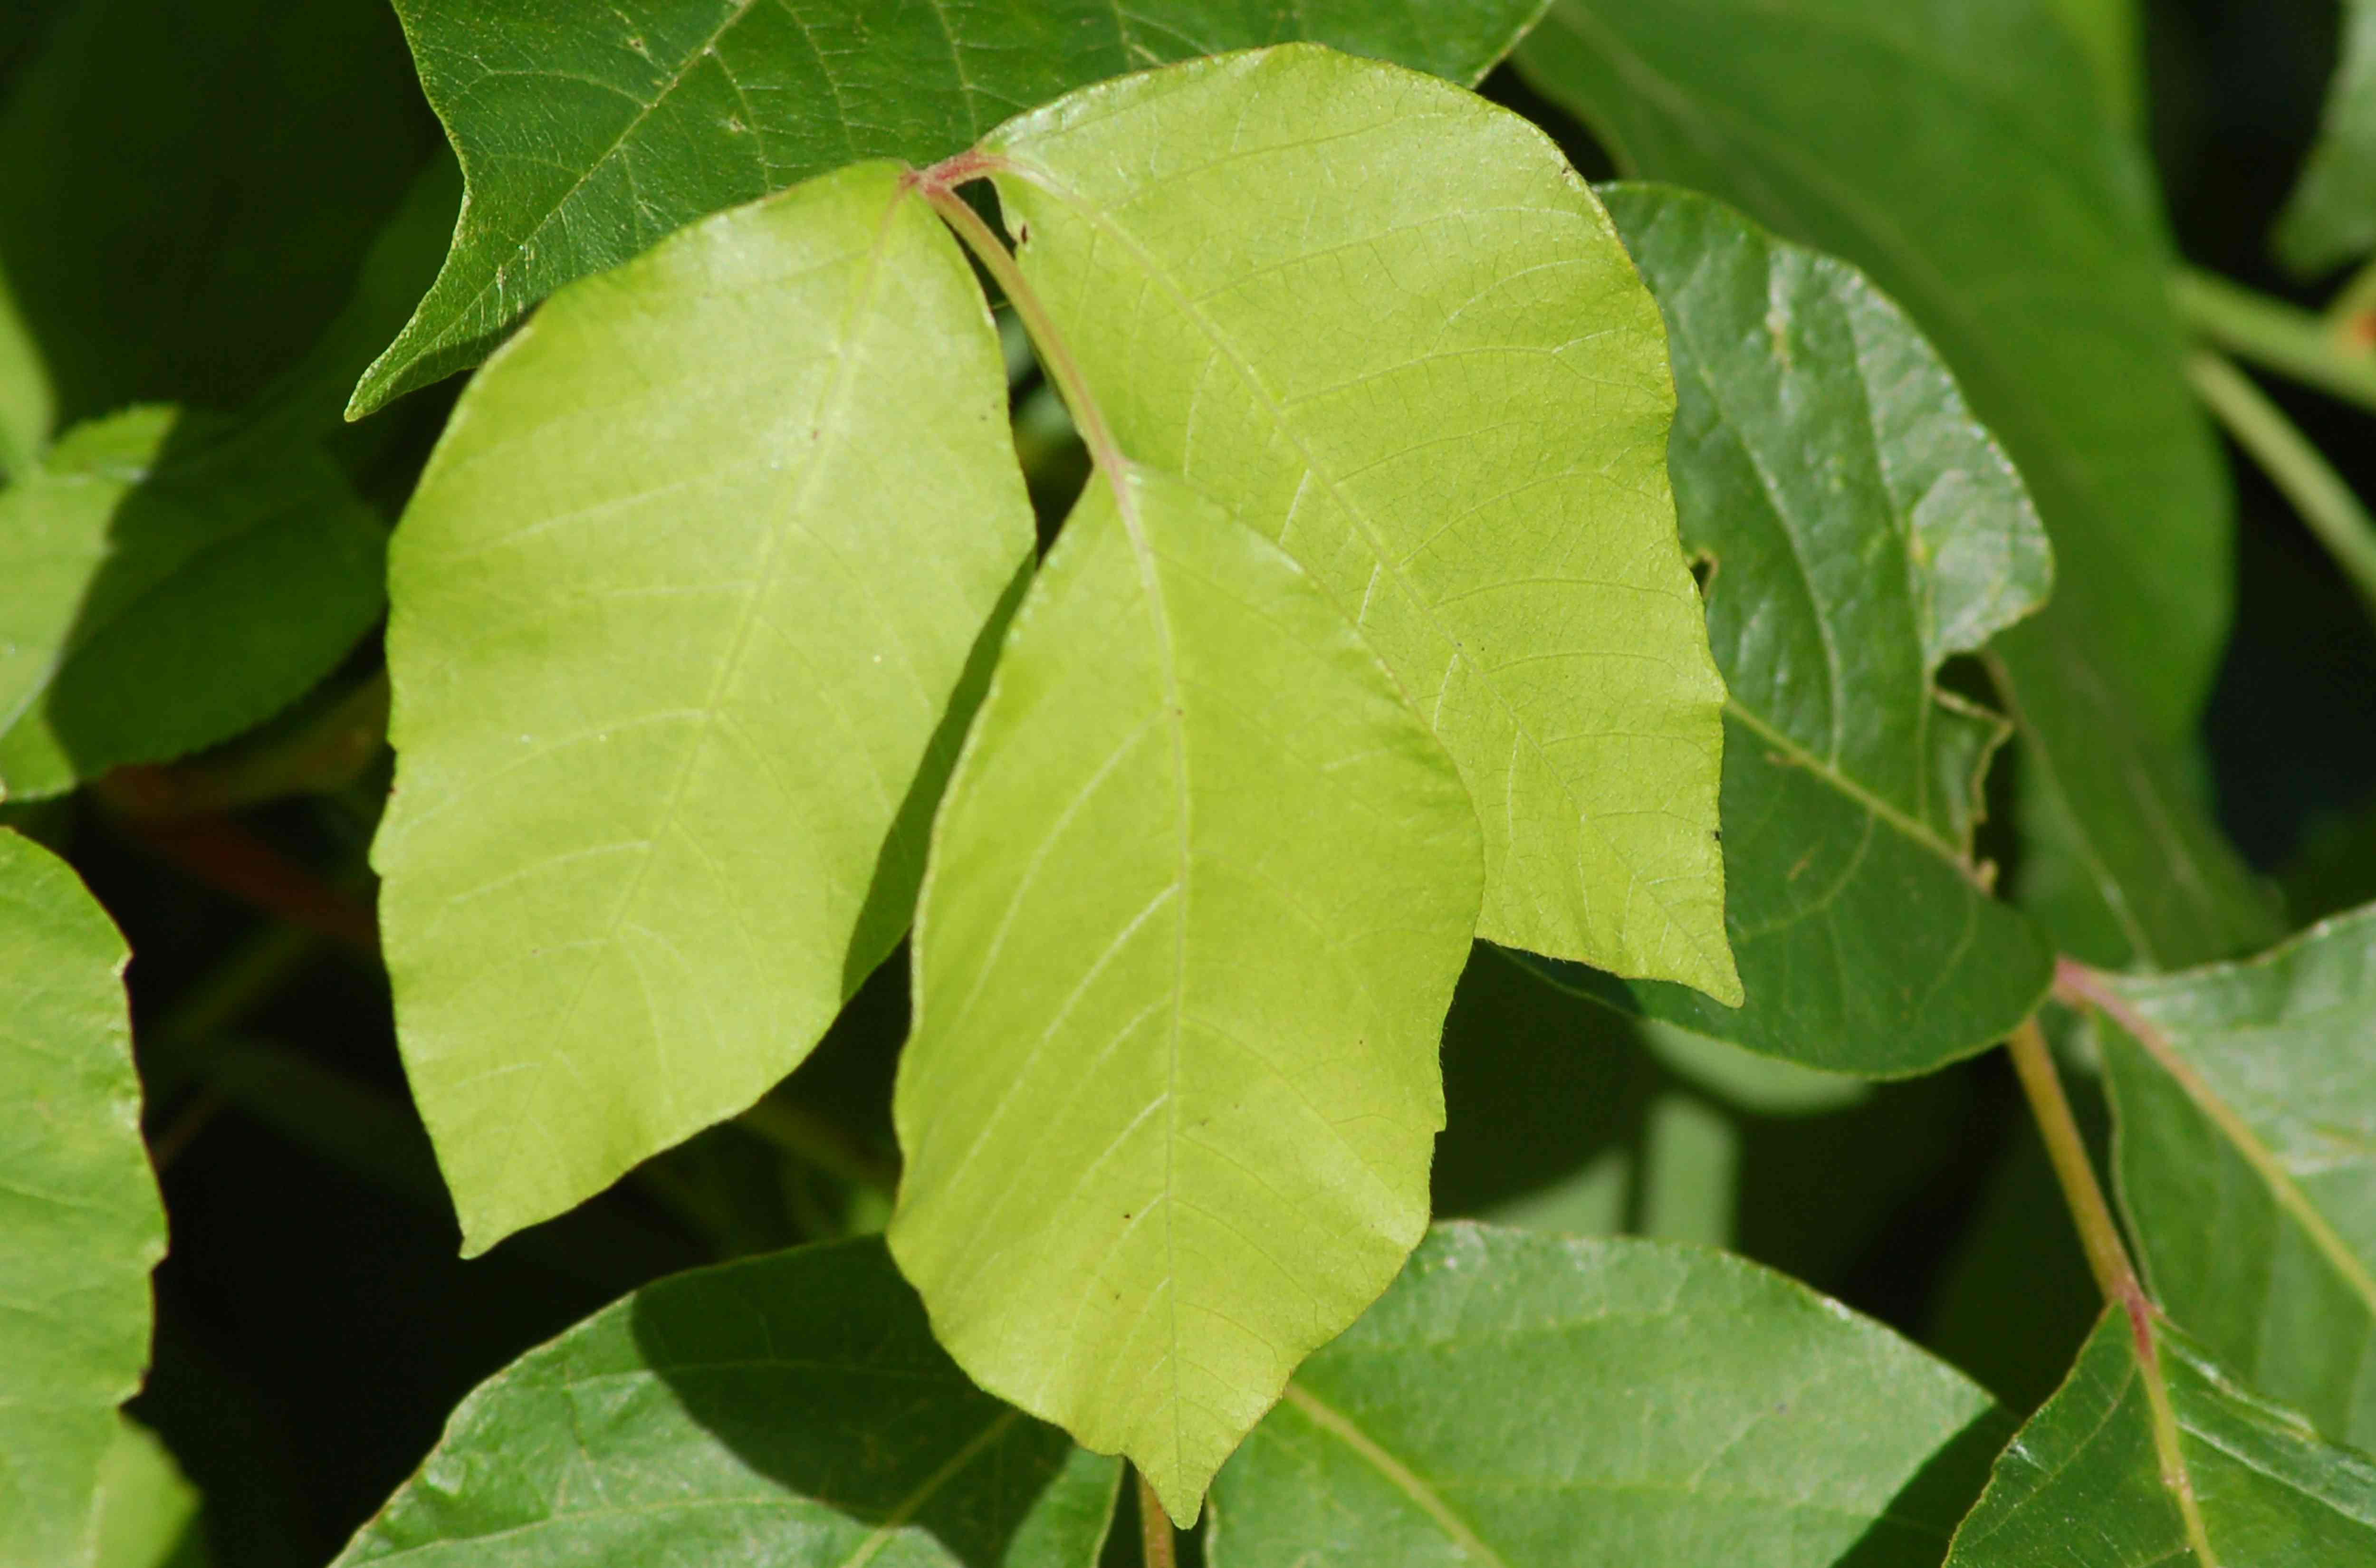 Poison ivy leaf with its three leaflets.